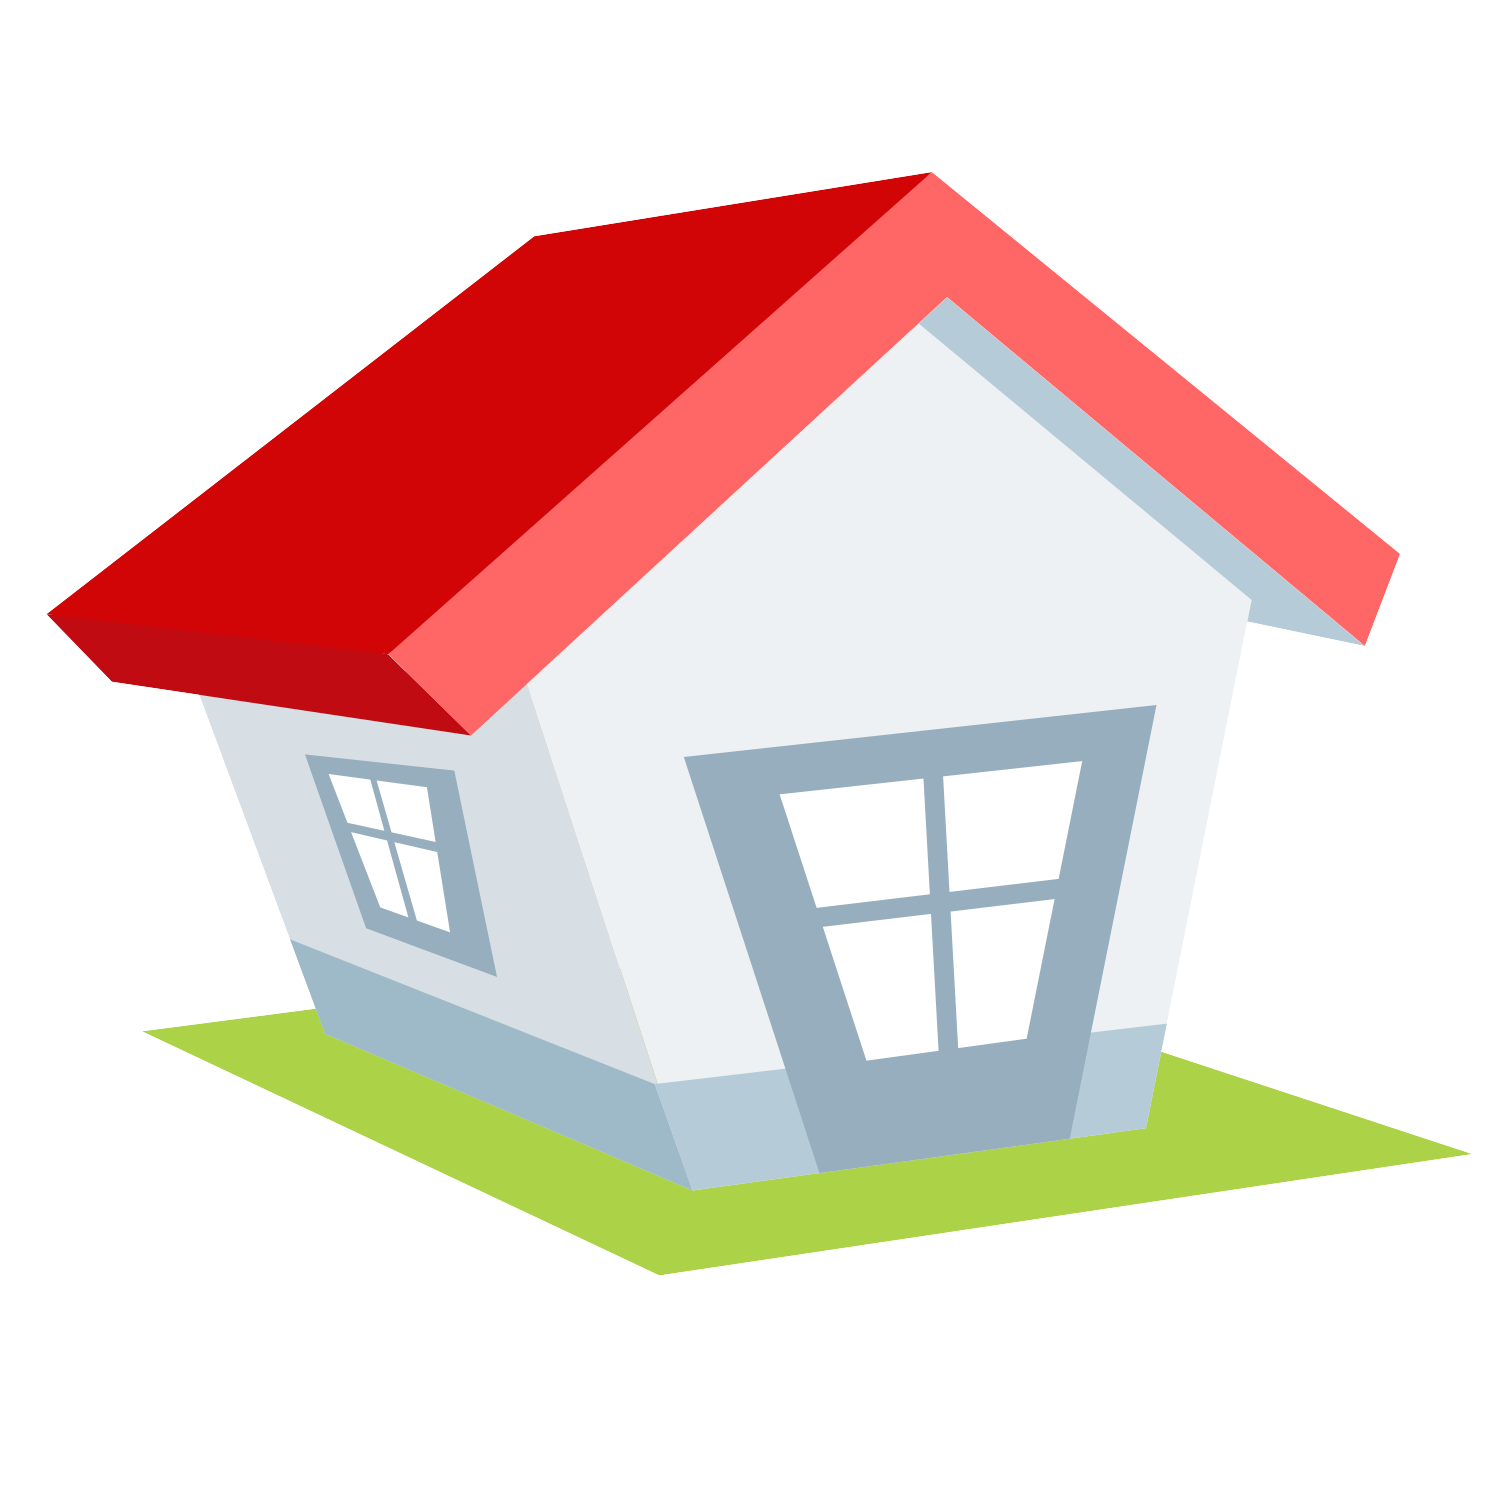 Homebuyer direct program cook county land bank authority - Clipart illustration ...